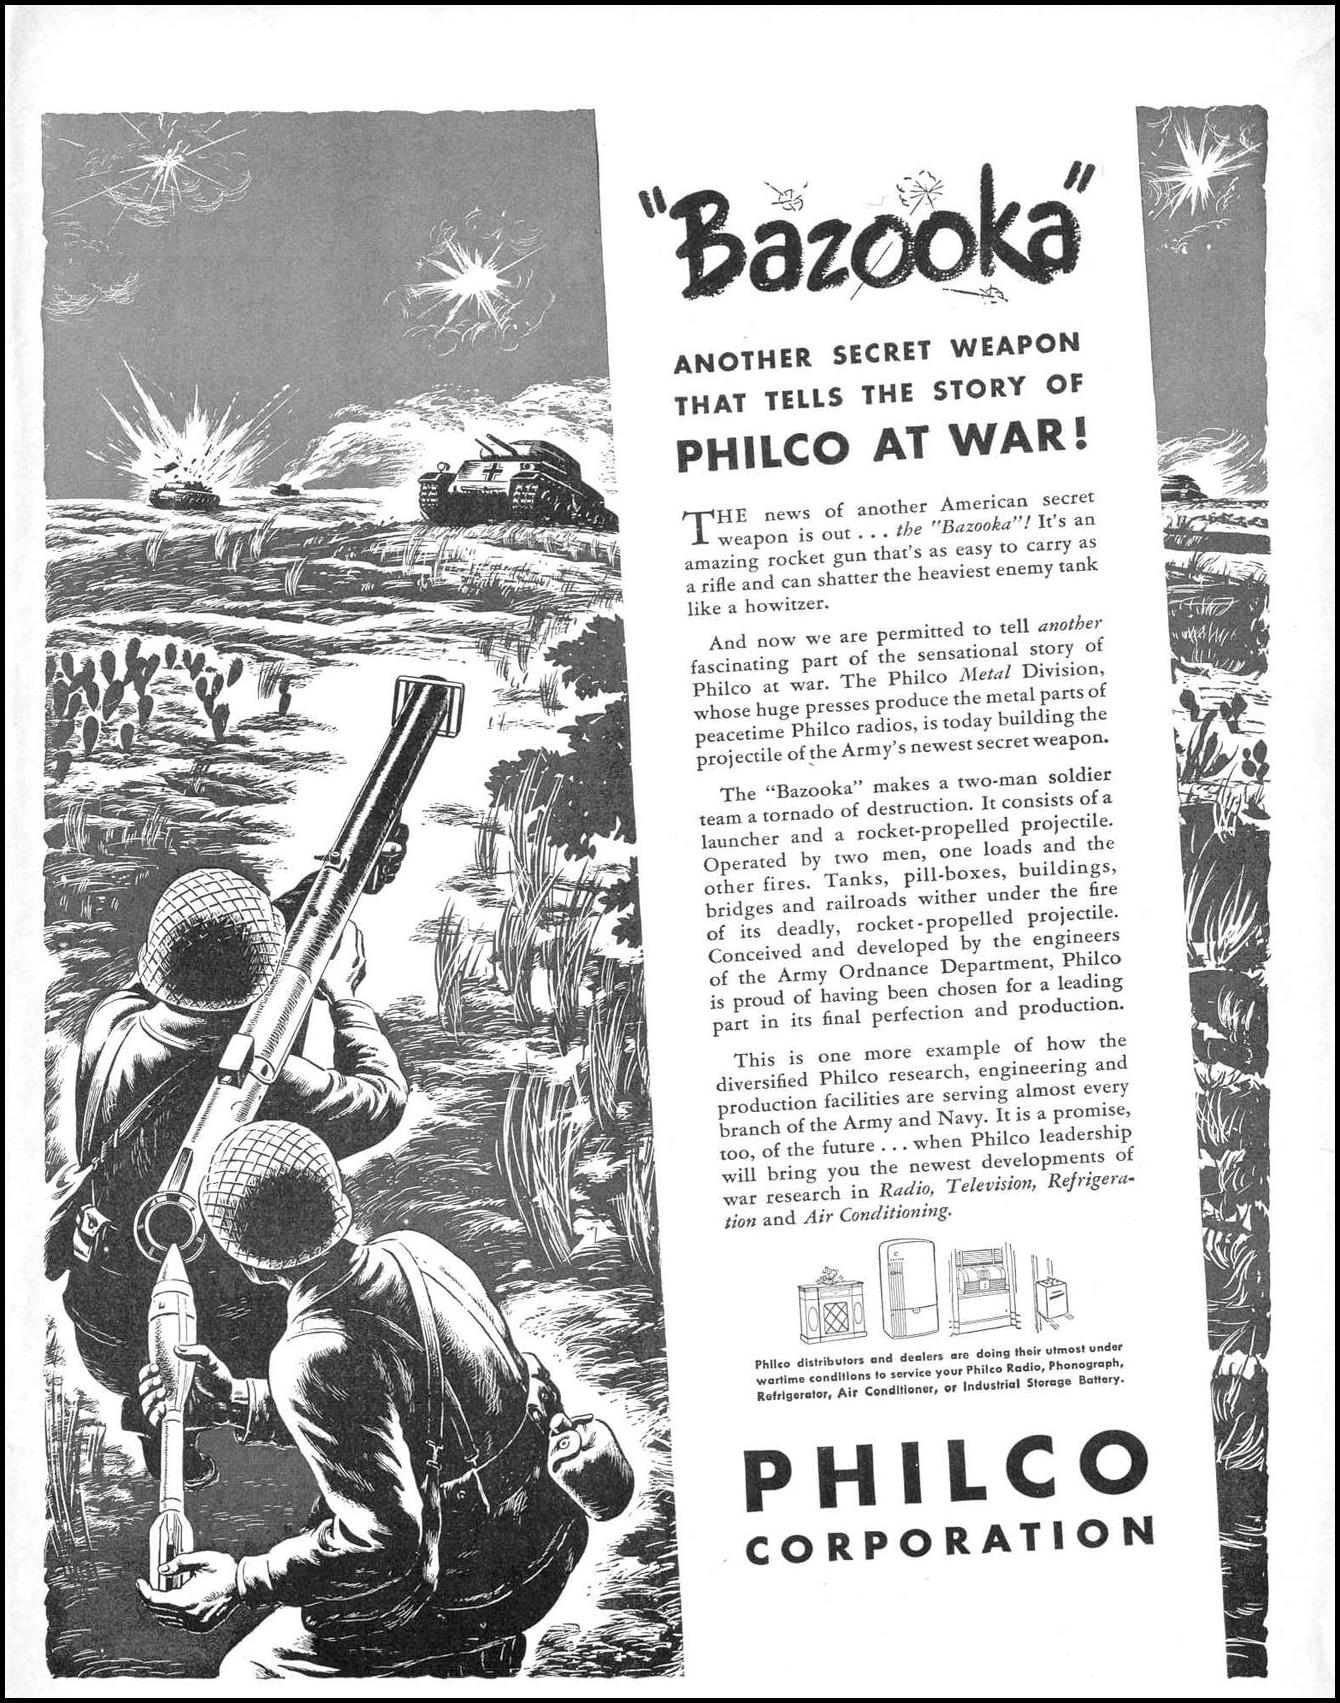 THE BAZOOKA